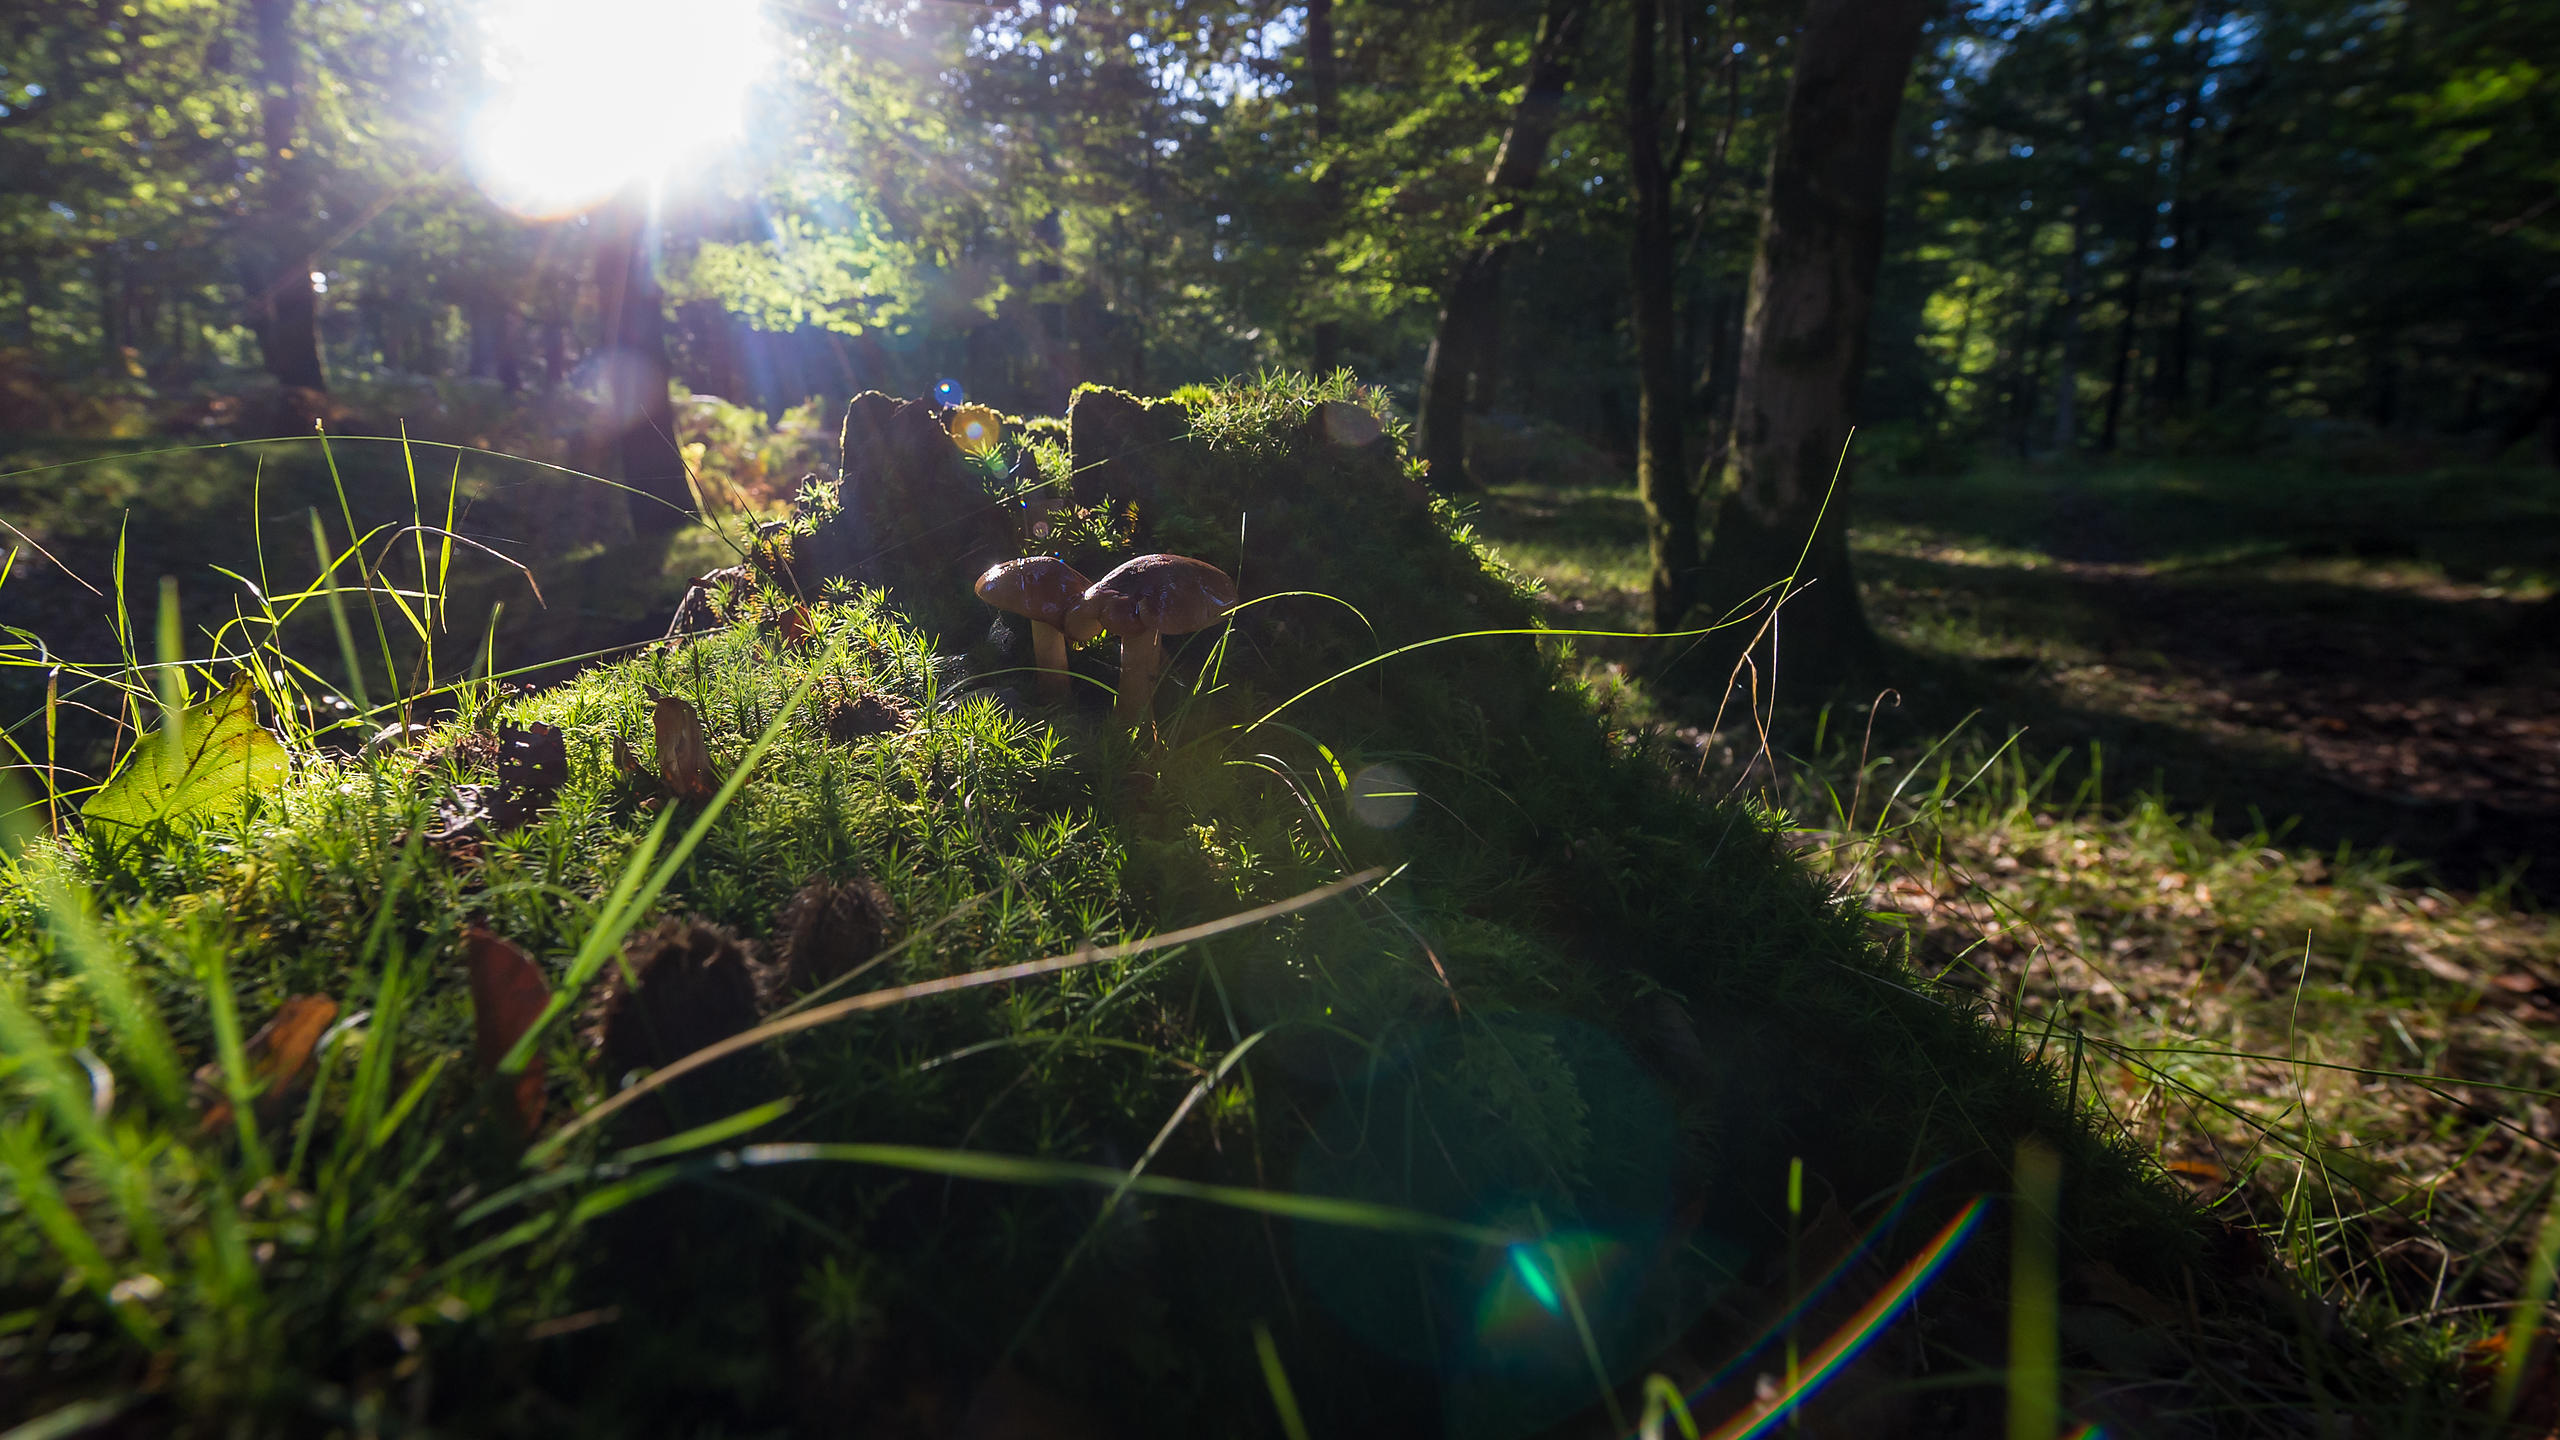 Forest Mushrooms in sun Flare